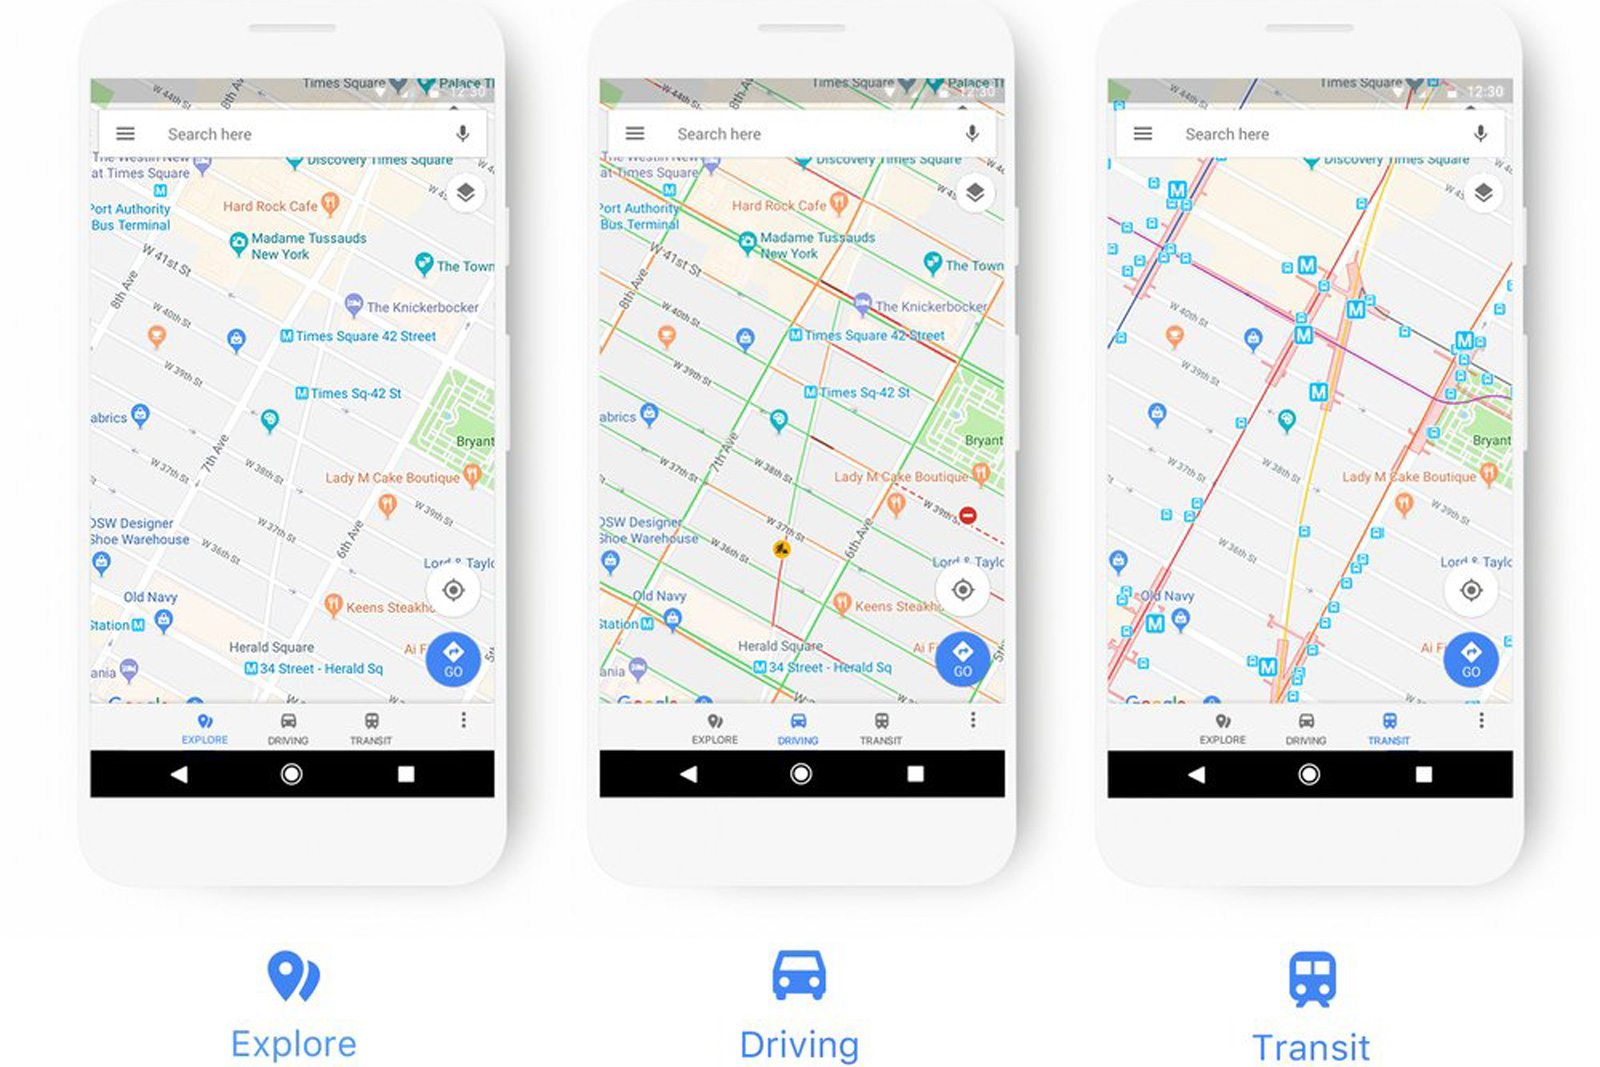 Google Maps' new look adapts to how you travel on goolge maps, googlr maps, stanford university maps, android maps, amazon fire phone maps, aerial maps, road map usa states maps, ipad maps, gppgle maps, iphone maps, googie maps, gogole maps, aeronautical maps, topographic maps, online maps, microsoft maps, search maps, waze maps, msn maps, bing maps,